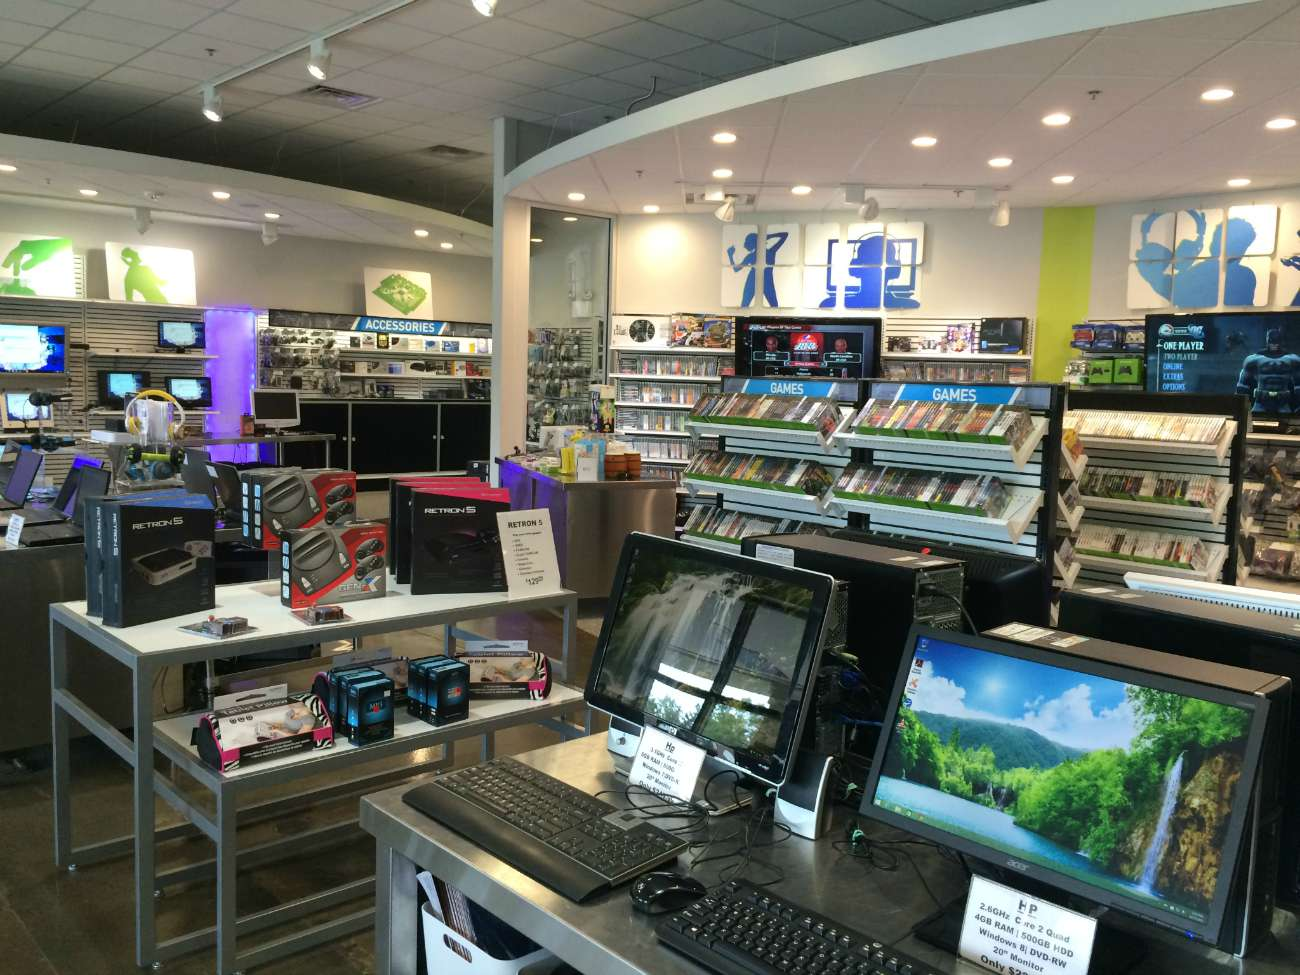 Charlotte Agenda – Are you aware Goodwill runs an electronics store called The GRID?